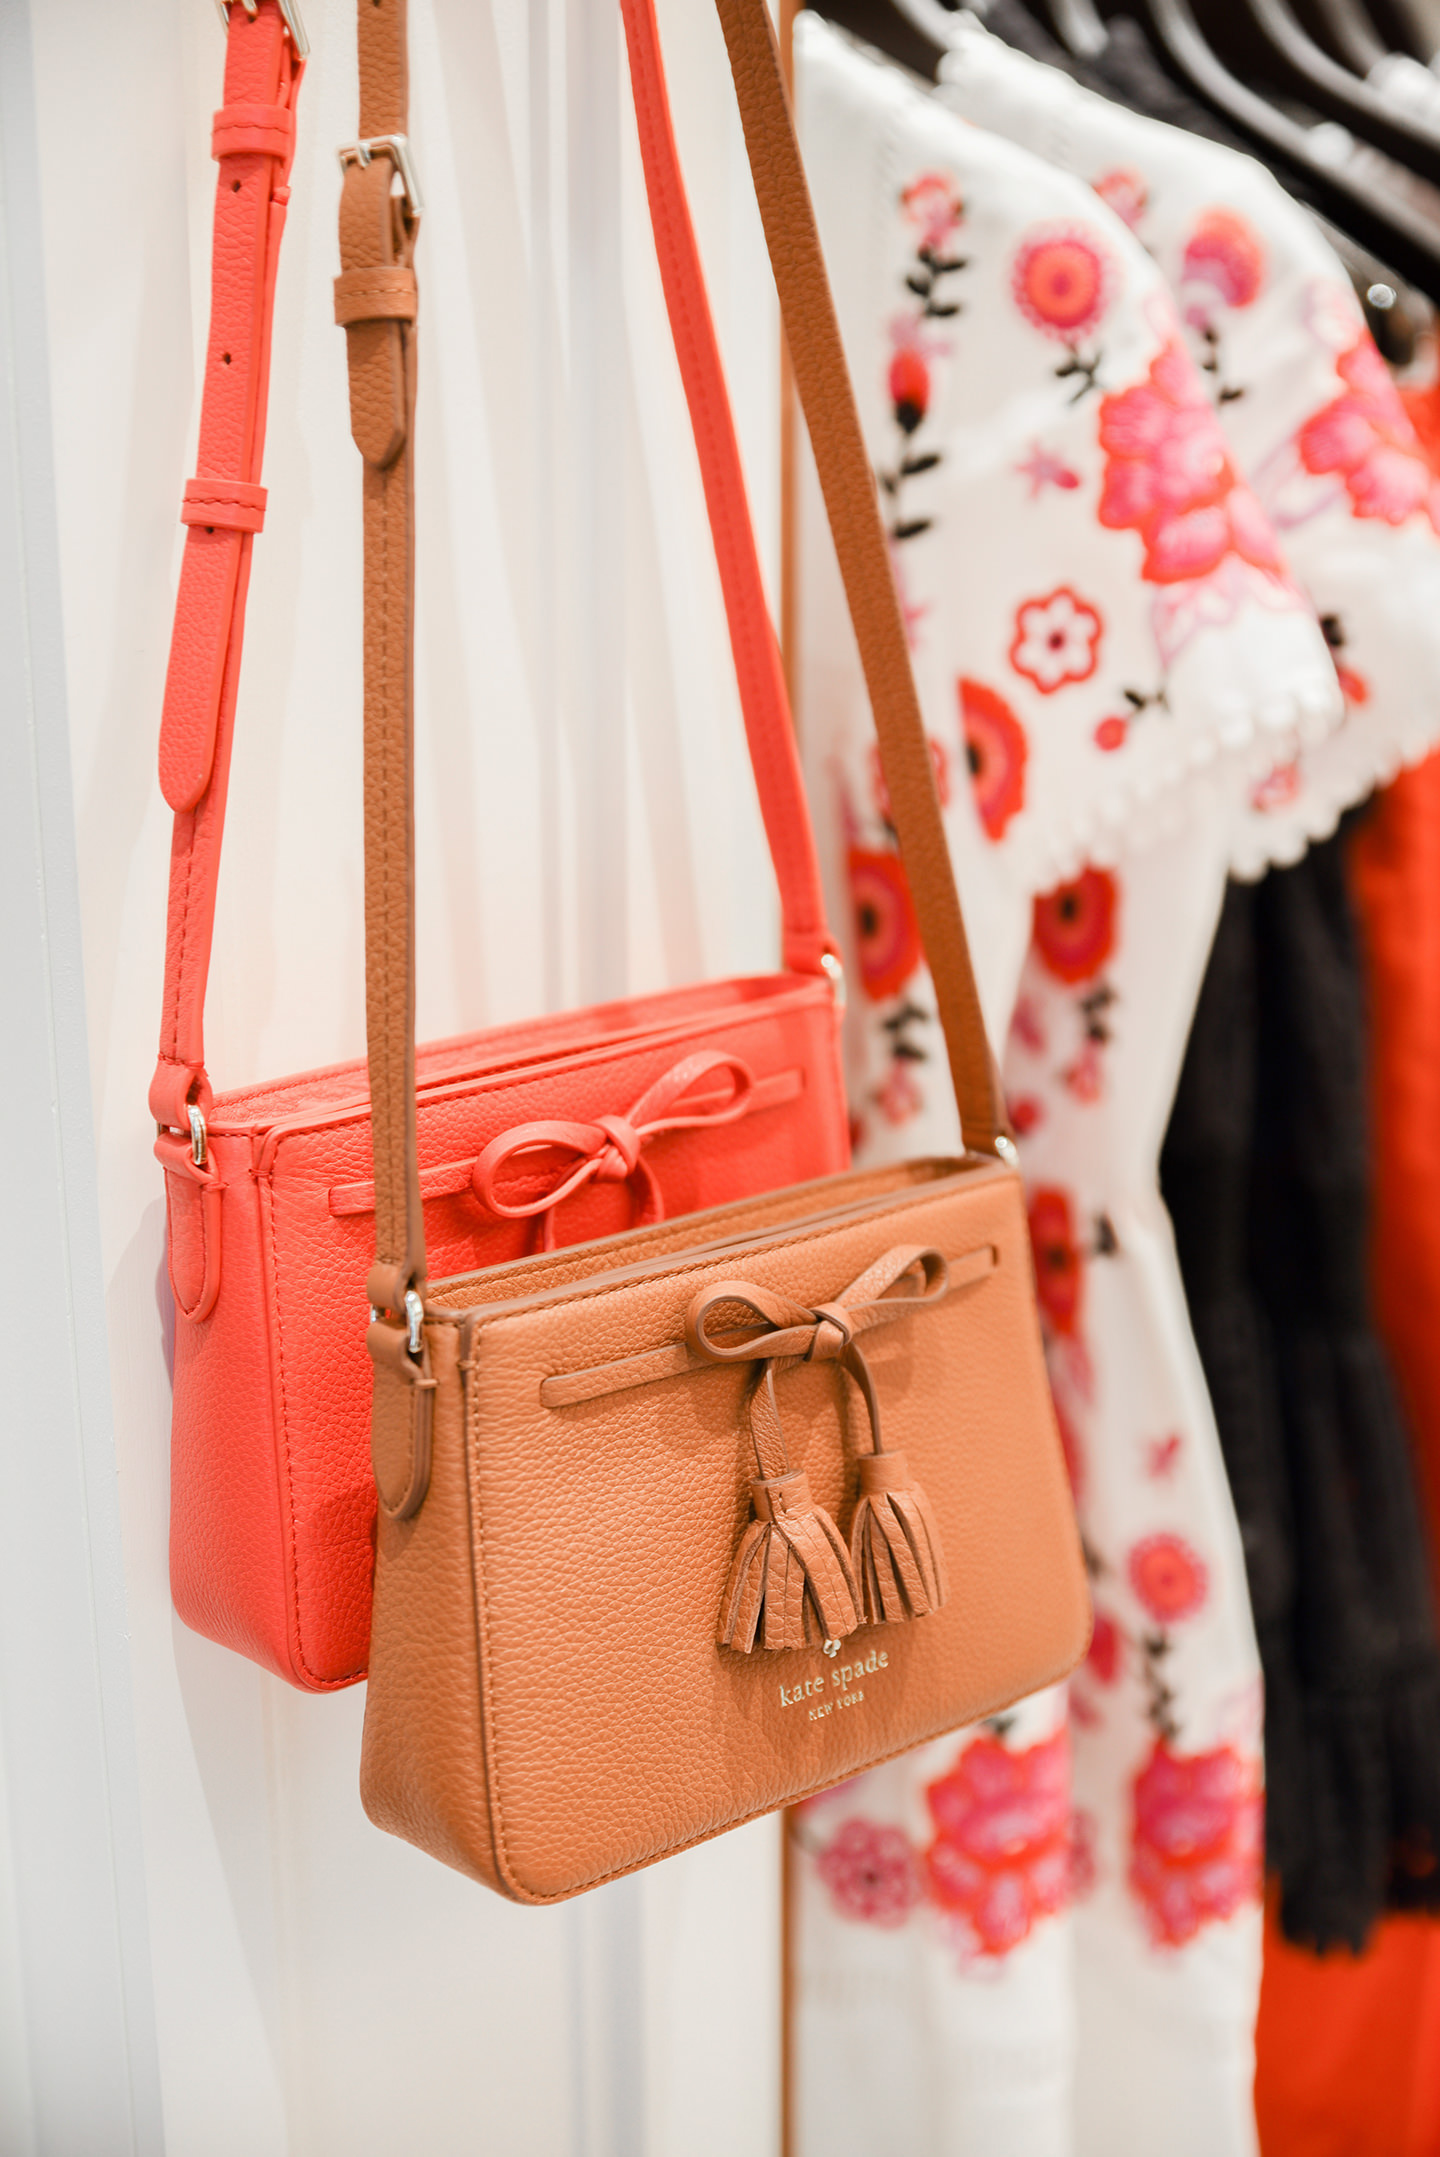 Blog-Mode-And-The-City-Lifestyle-Kate-Spade-Paris-418-rue-saint-honore-3